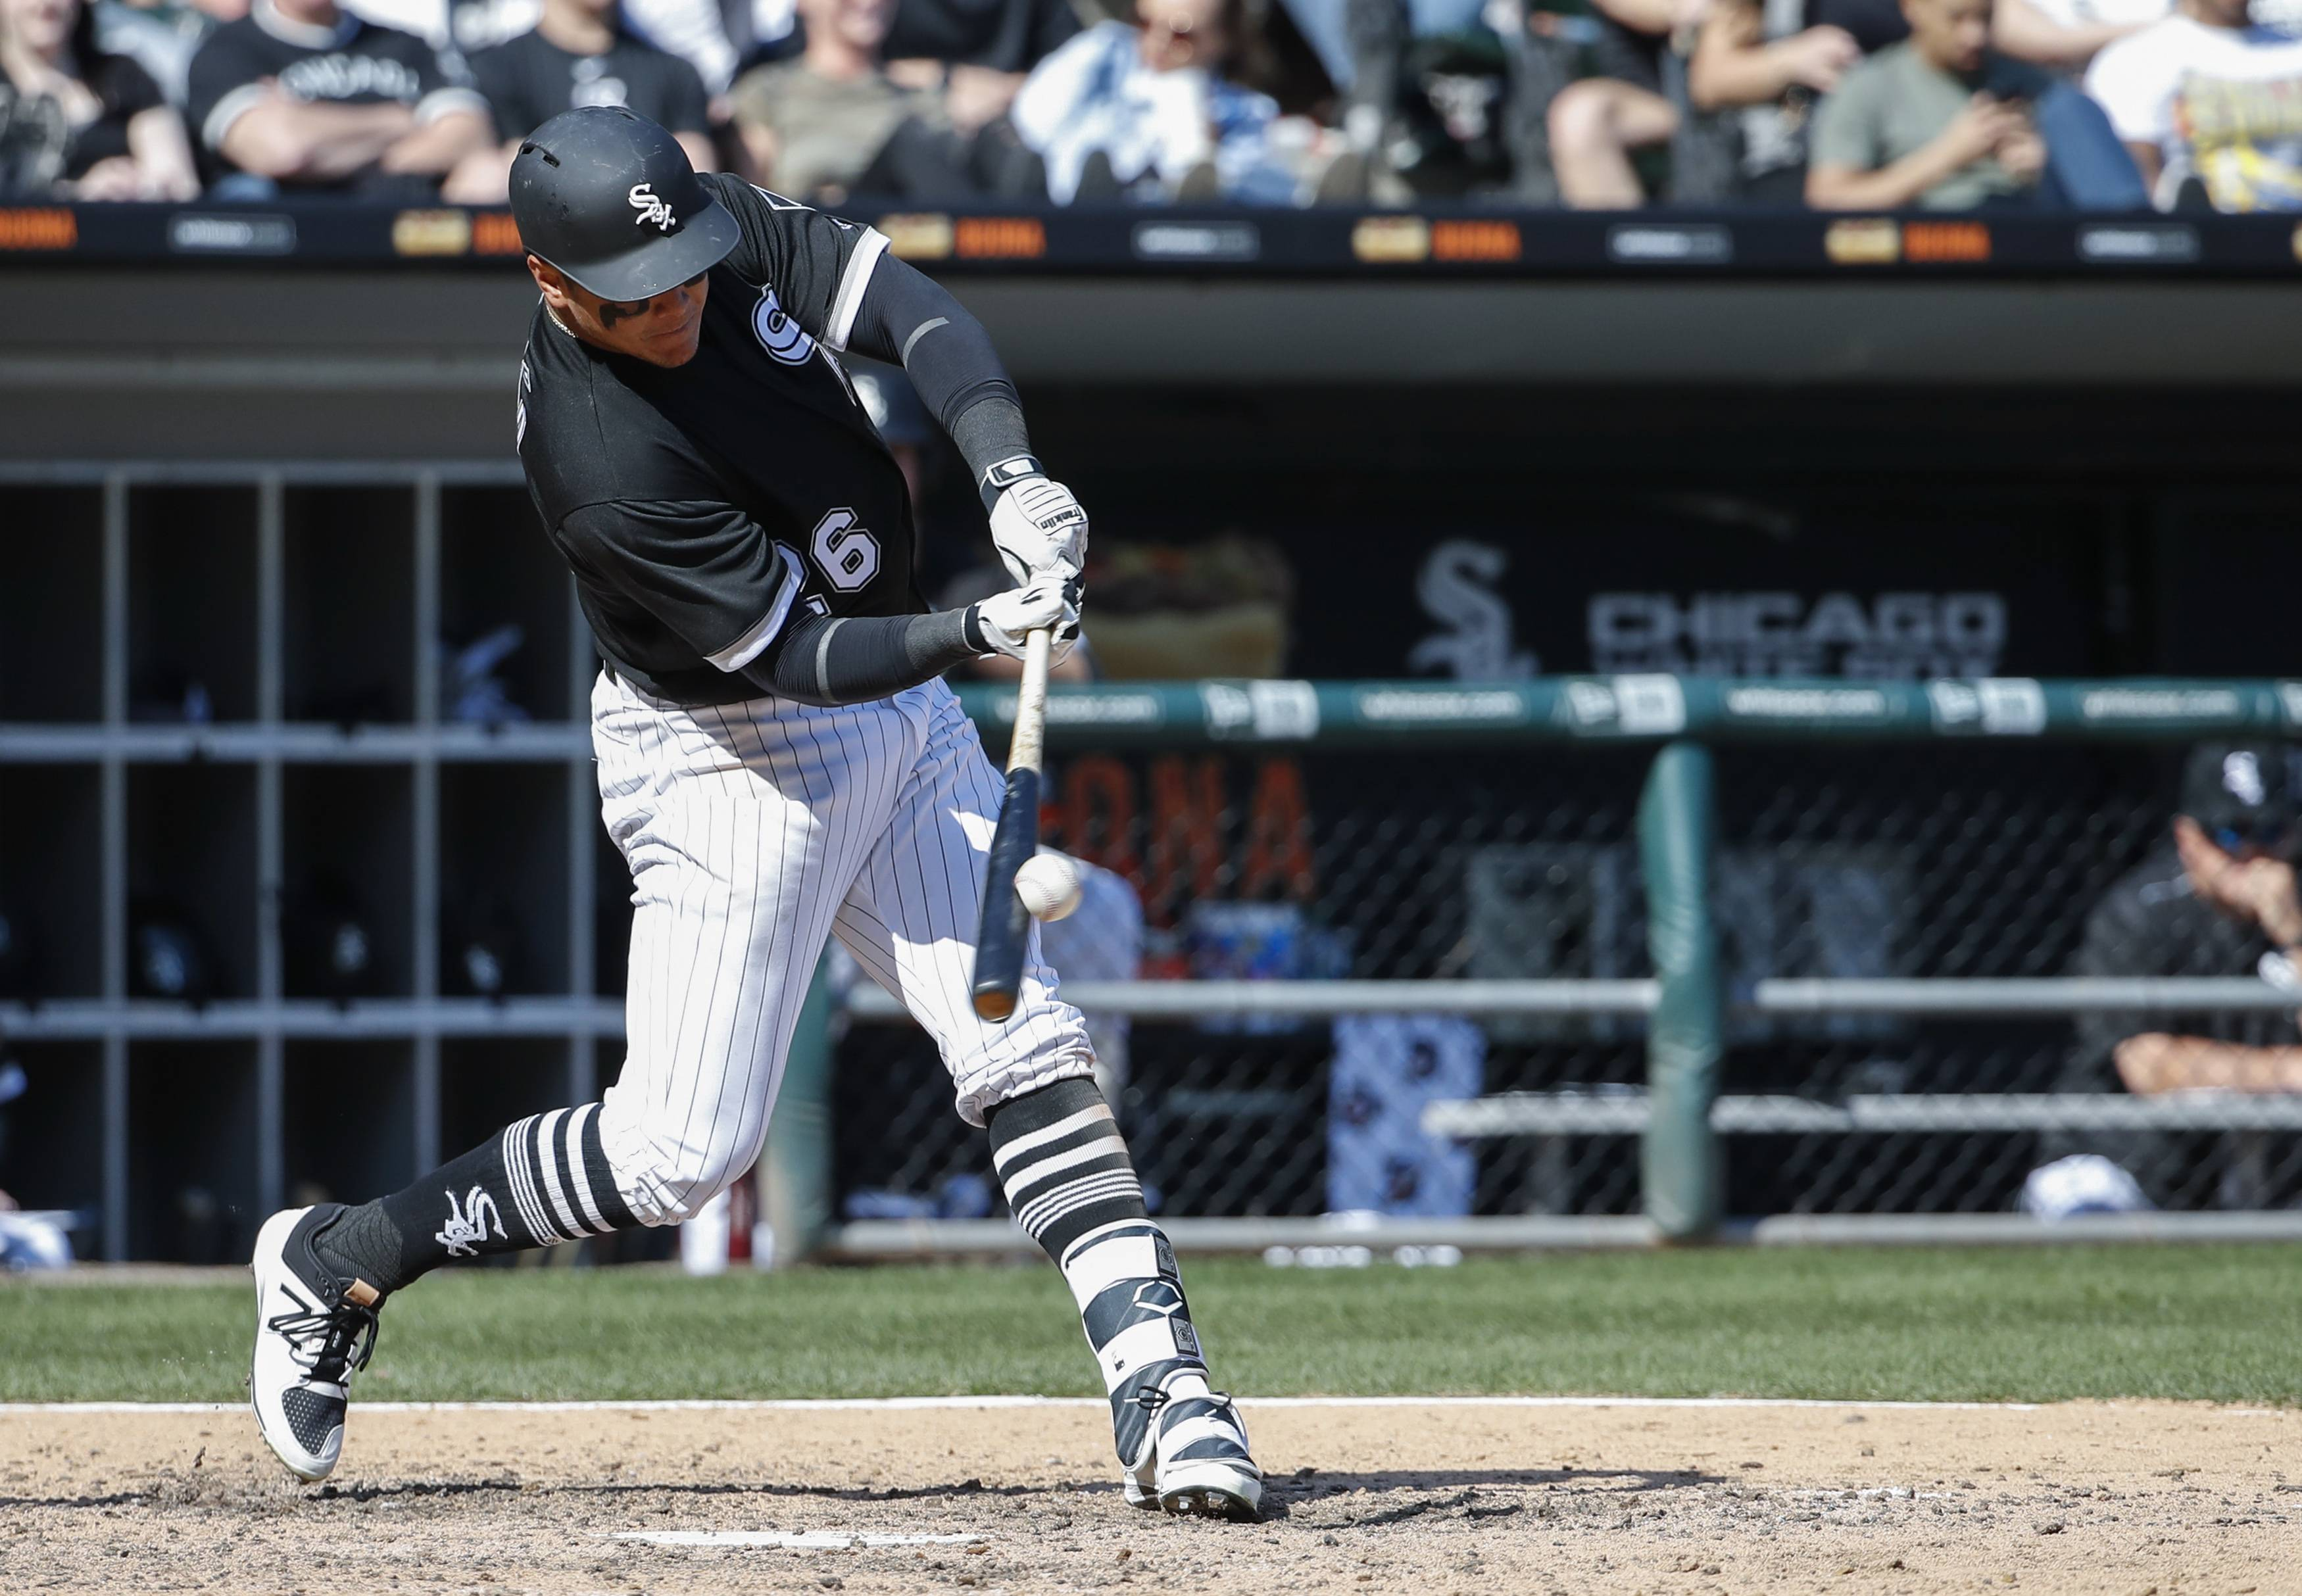 Garcia's hot bat lifts White Sox to 6-2 win over Twins